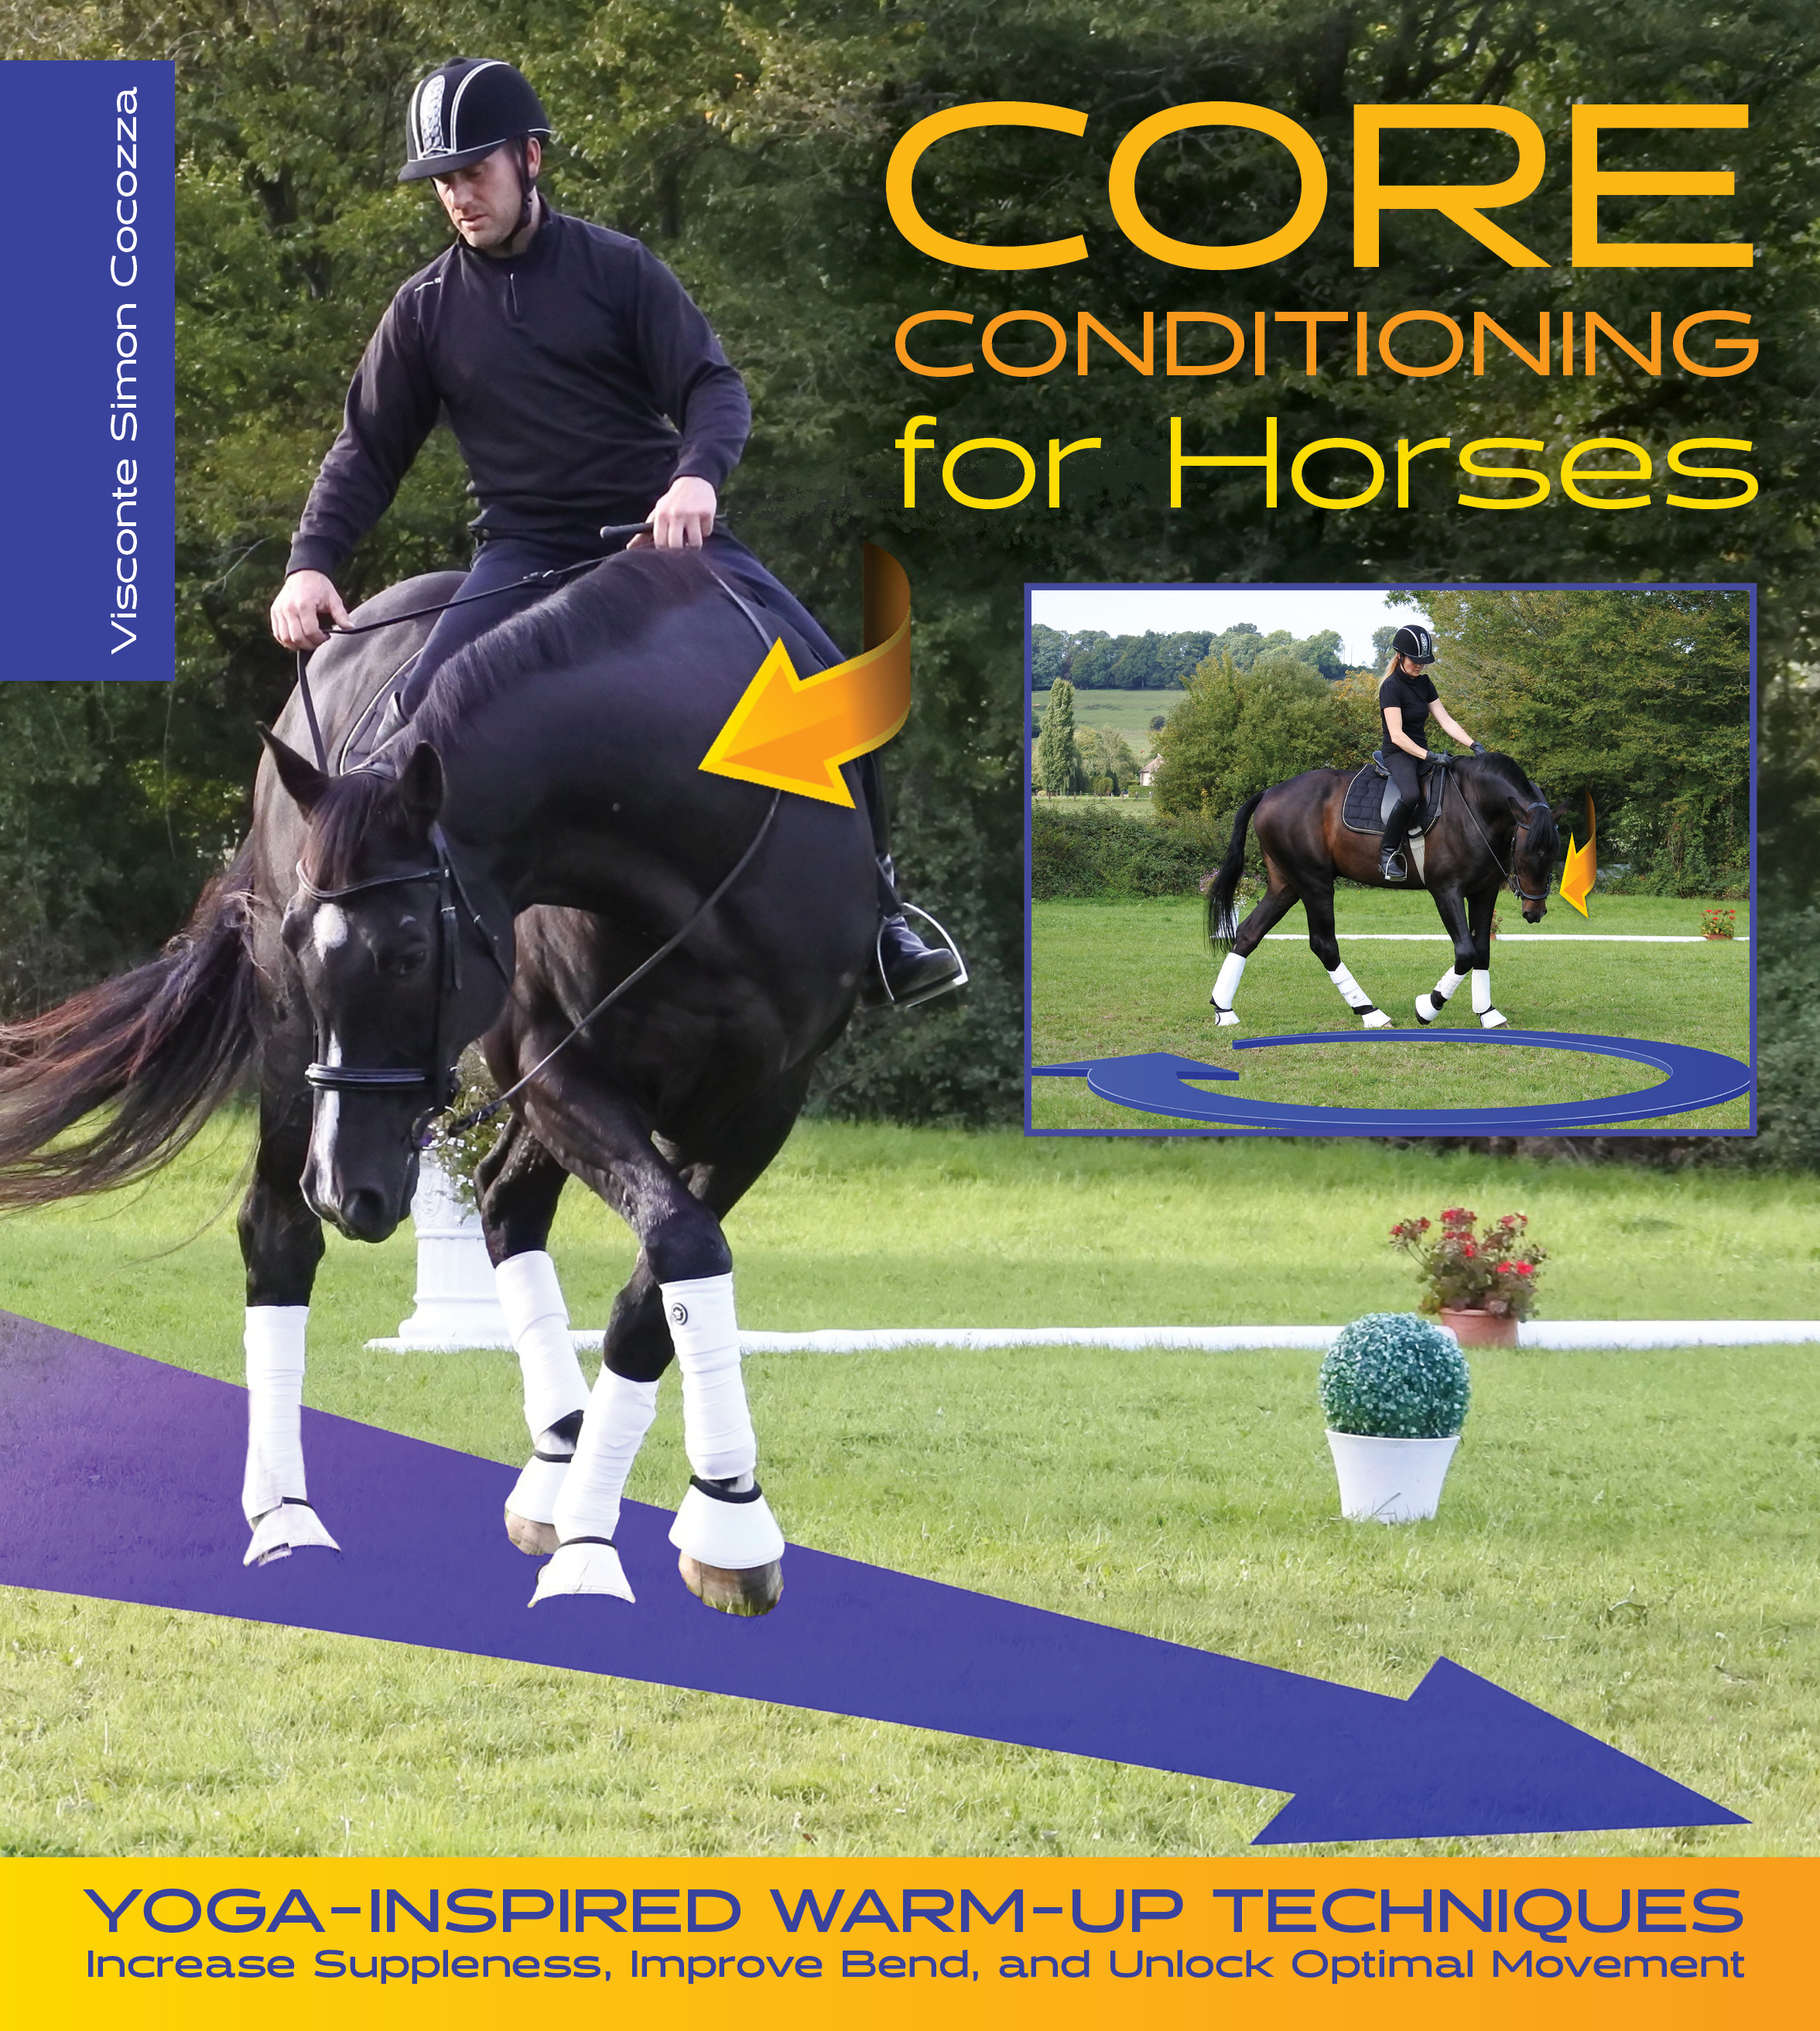 Core Conditioning for Horses (1).jpg